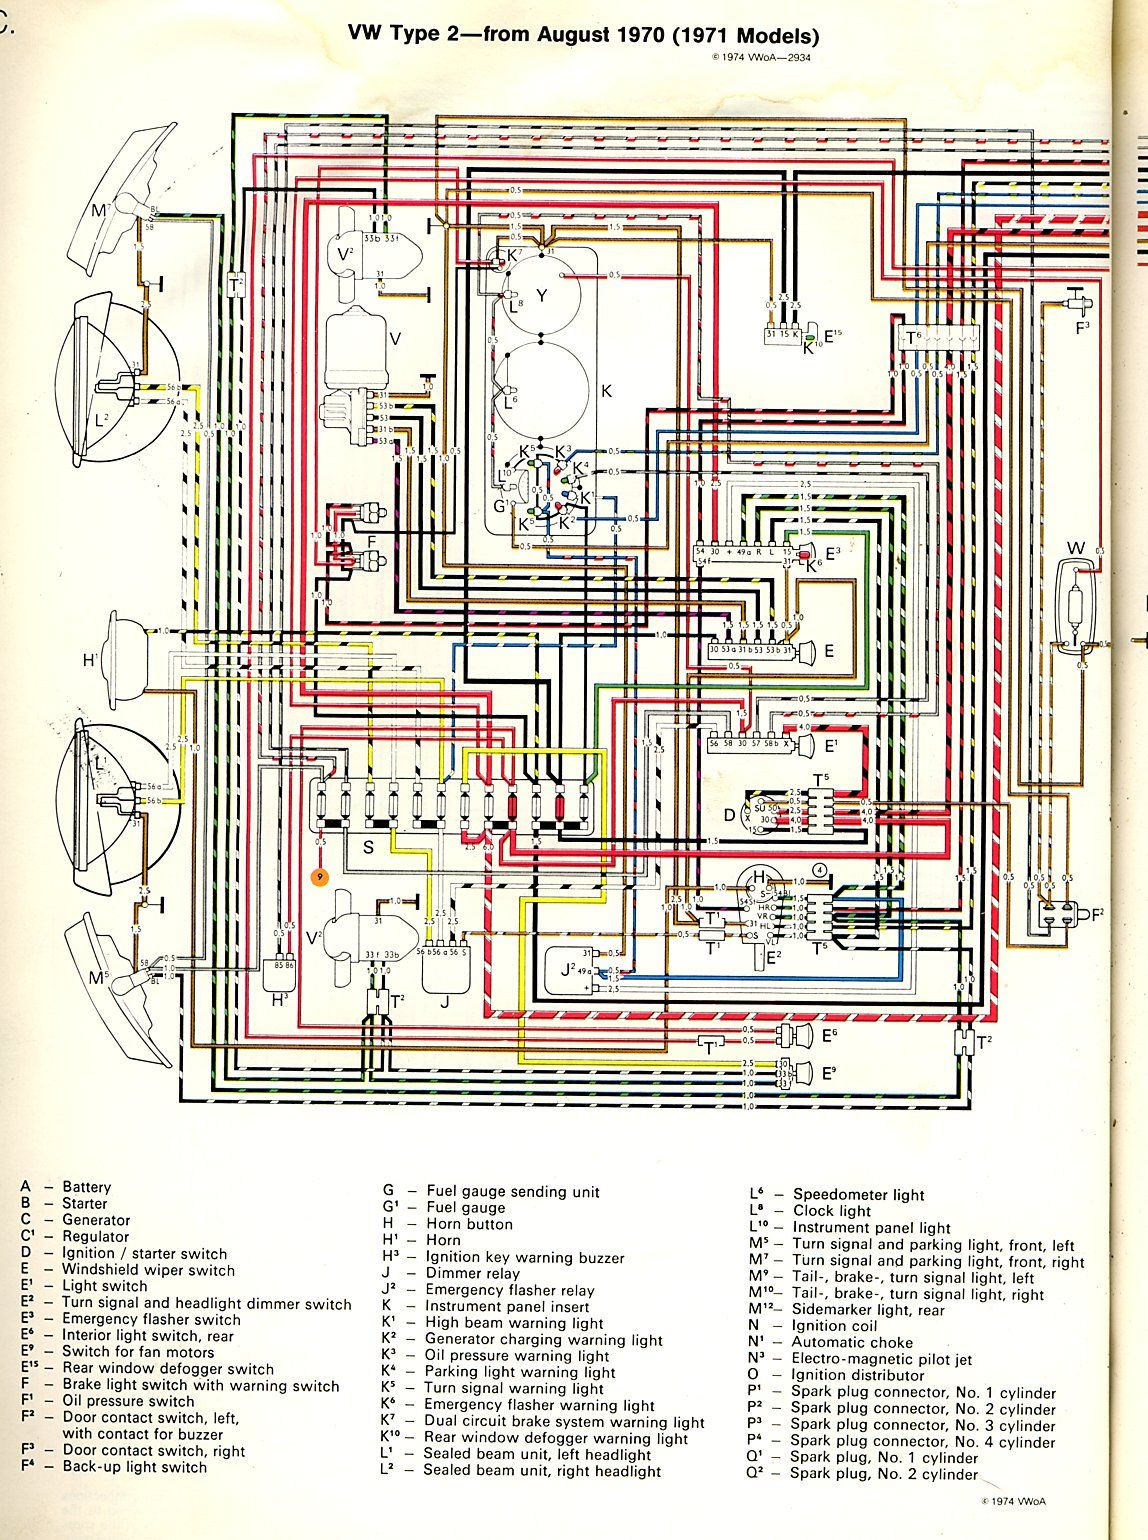 1971 Bus Wiring diagram | TheGoldenBug.com | Stuff to Try | Vw bus  Diagram Jeep Wiring Oil Pressure Sensor on 99 jeep 4.0 cam sensor, jeep 4.0 o2 sensor, ford 6.0 oil pressure sensor, 5.7 hemi oil pressure sensor, nissan titan oil pressure sensor, 2007 impala oil pressure sensor, dt466 map sensor, pt cruiser oil pressure sensor, dodge ram oil pressure sensor, jeep 4.0 intake air temperature sensor, jeep liberty oil pressure sending unit, jeep 4.0 camshaft sensor, 5.3 vortec oil pressure sensor, 2003 chevy silverado oil pressure sensor, changing oil pressure sensor, jeep oil pressure switch, chevy 350 oil pressure sensor, jeep 4.0 throttle sensor, jeep 4.0 fuel pressure regulator, jeep 4.7 engine diagram,